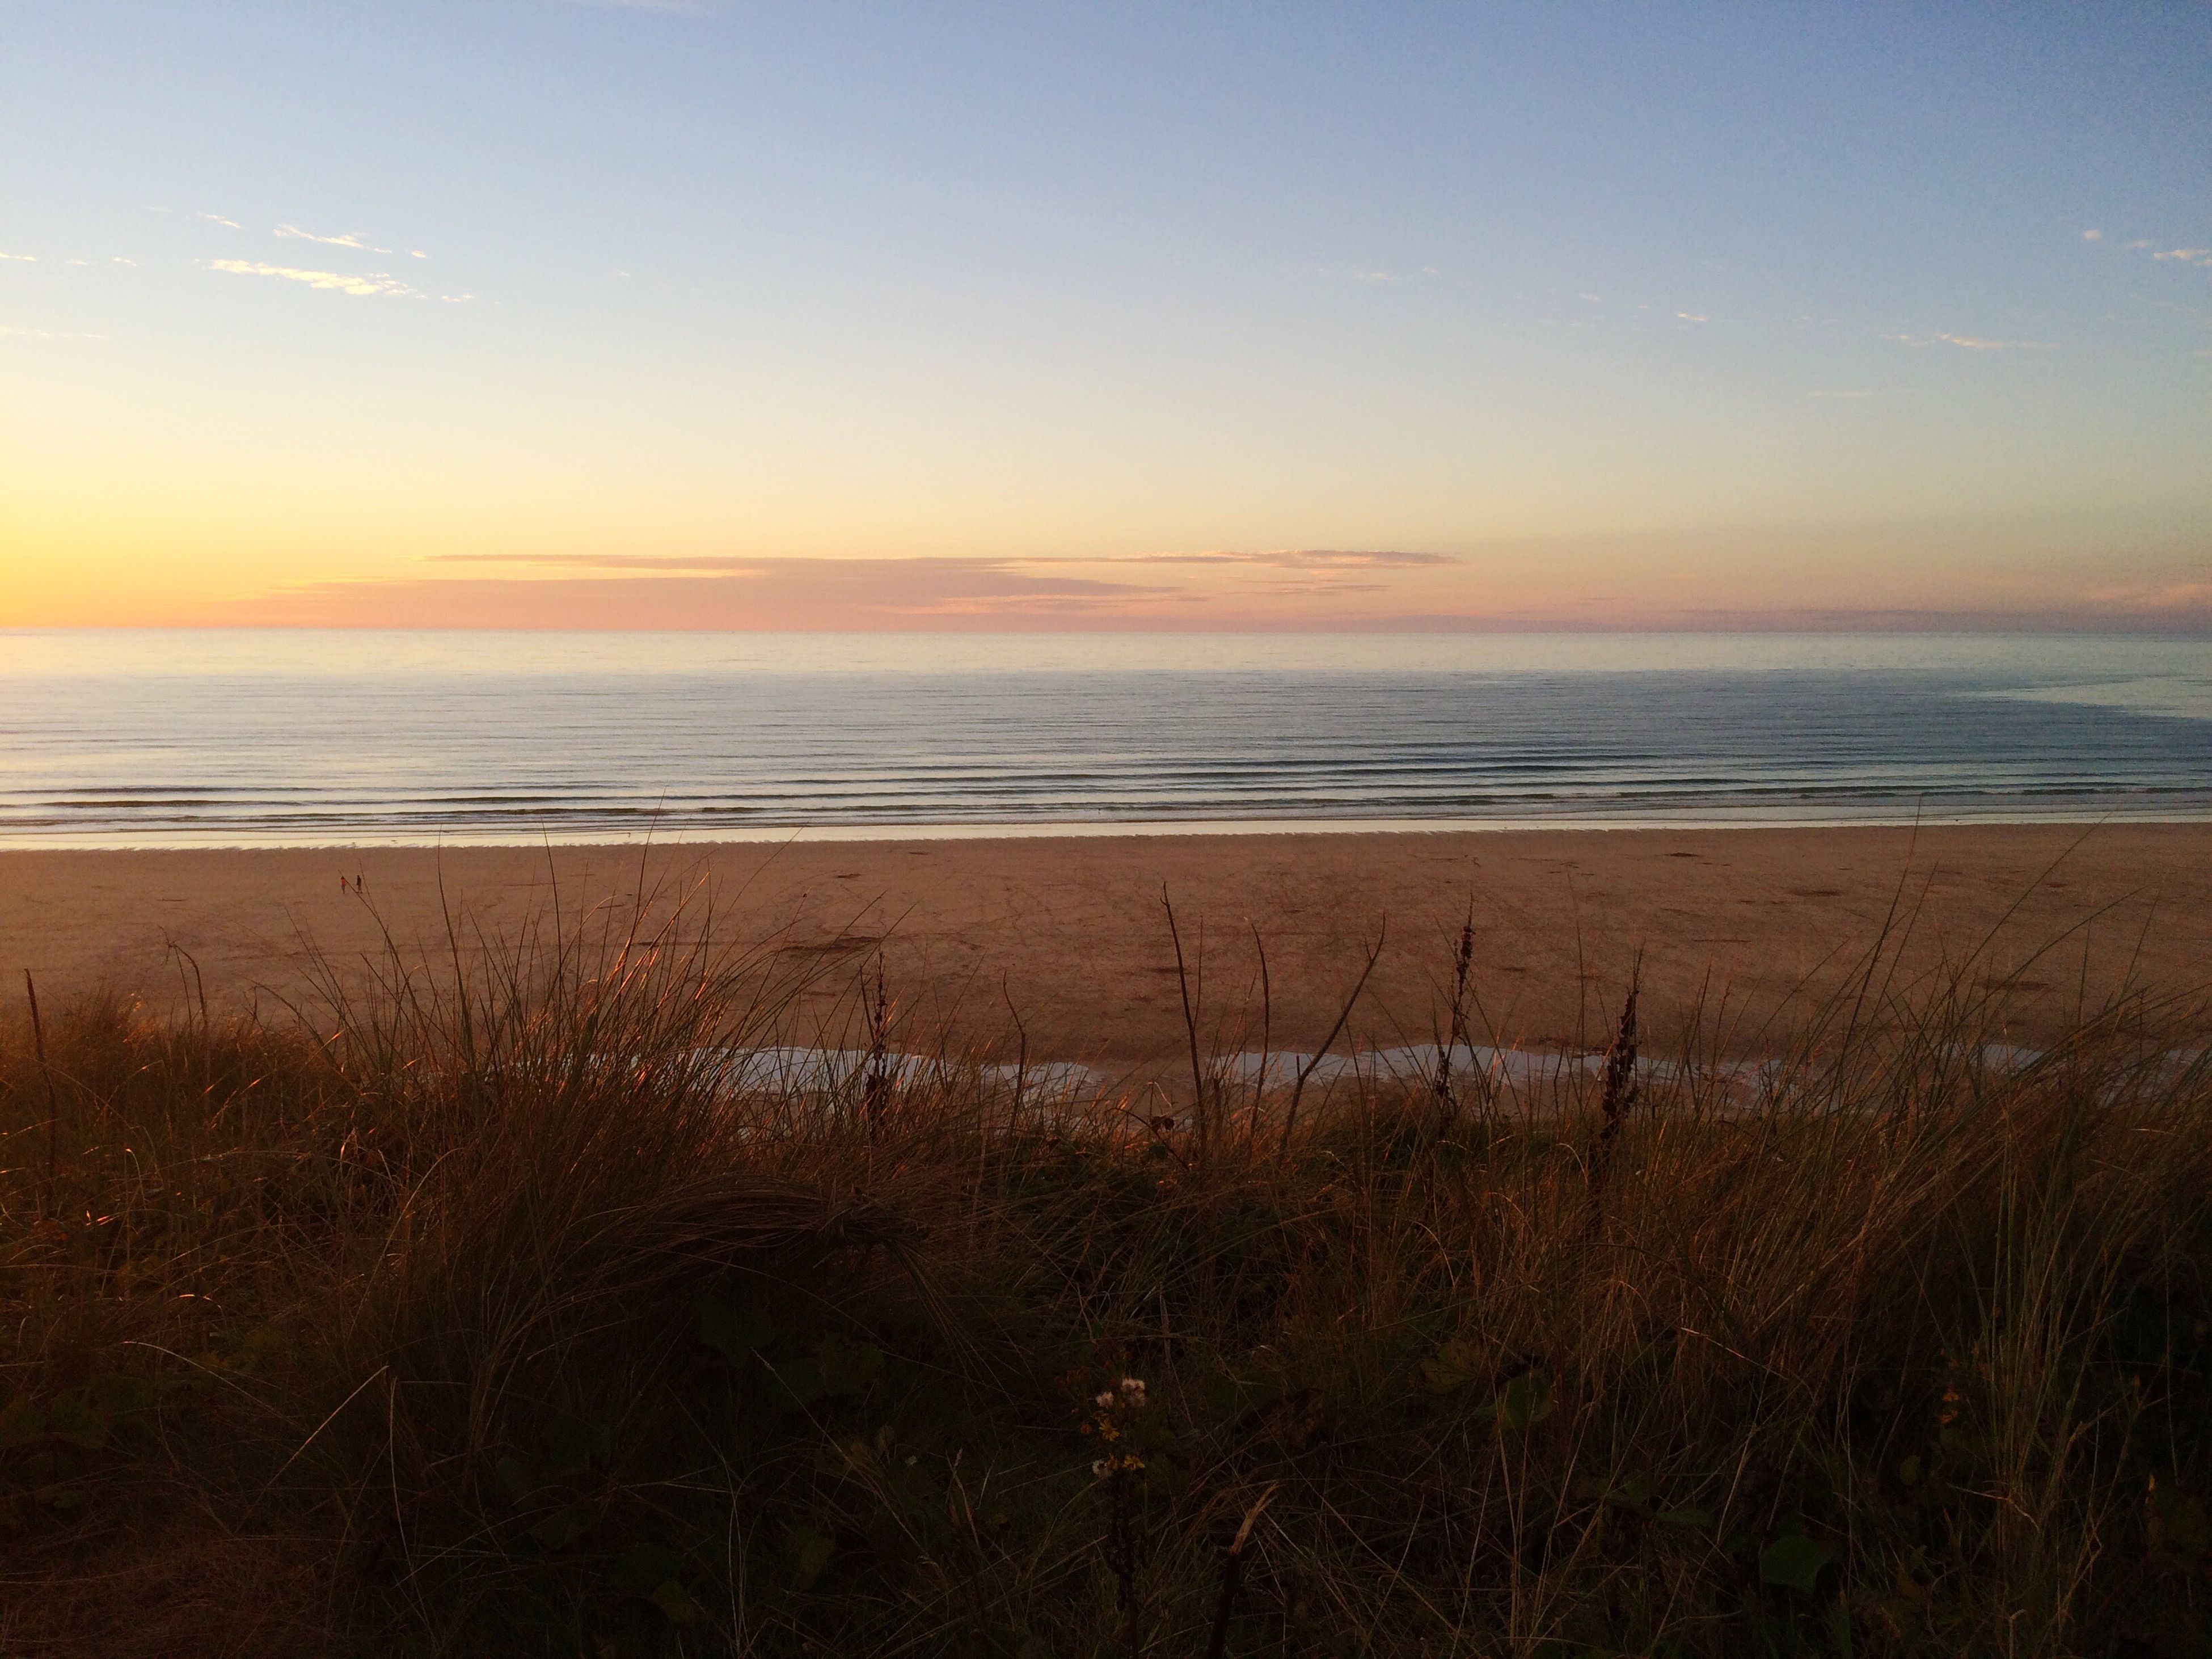 beach, water, sunset, grass, scenics, sand, shore, sea, tranquility, tranquil scene, beauty in nature, horizon over water, idyllic, sky, nature, plant, cloud, non-urban scene, calm, coastline, growth, majestic, blue, wave, dawn, orange color, sunrise - dawn, seascape, remote, outdoors, vacations, sunrise, no people, green color, ocean